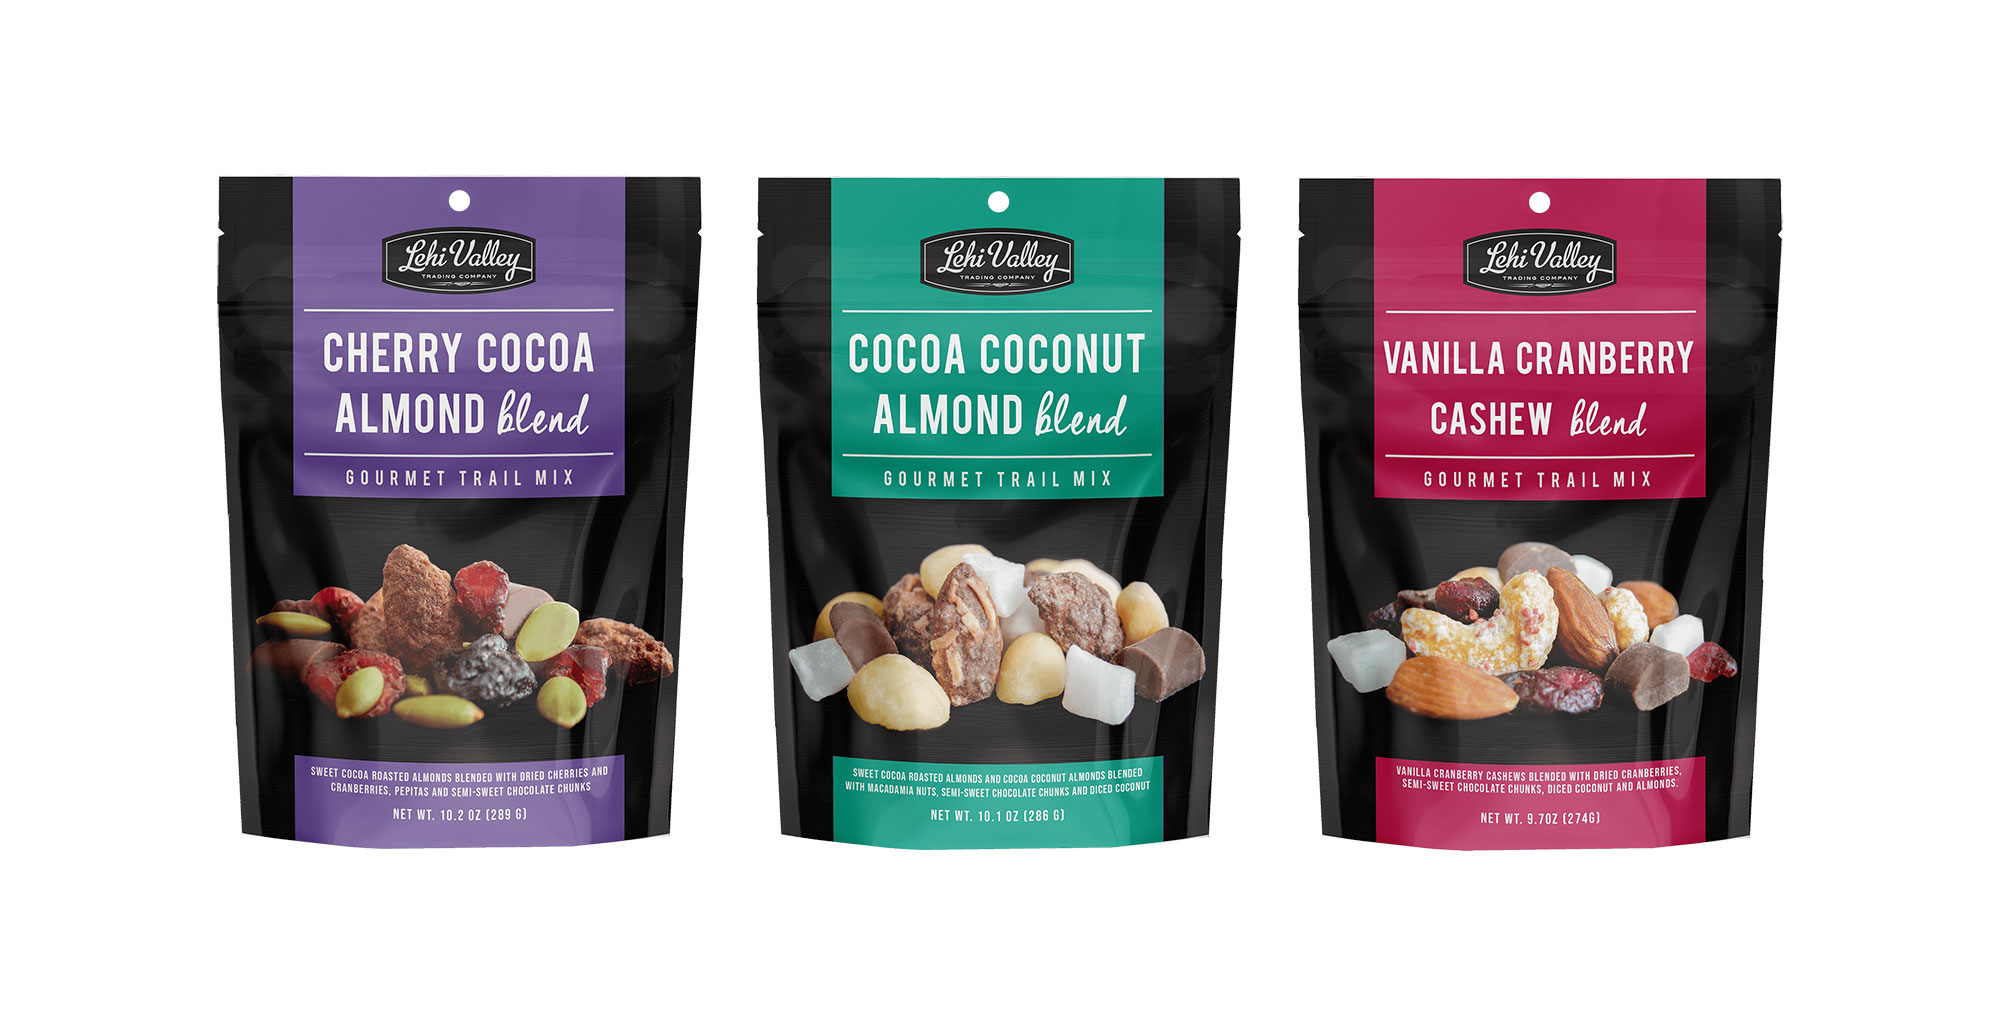 Our various gourmet blend trail mixes displayed in their bags